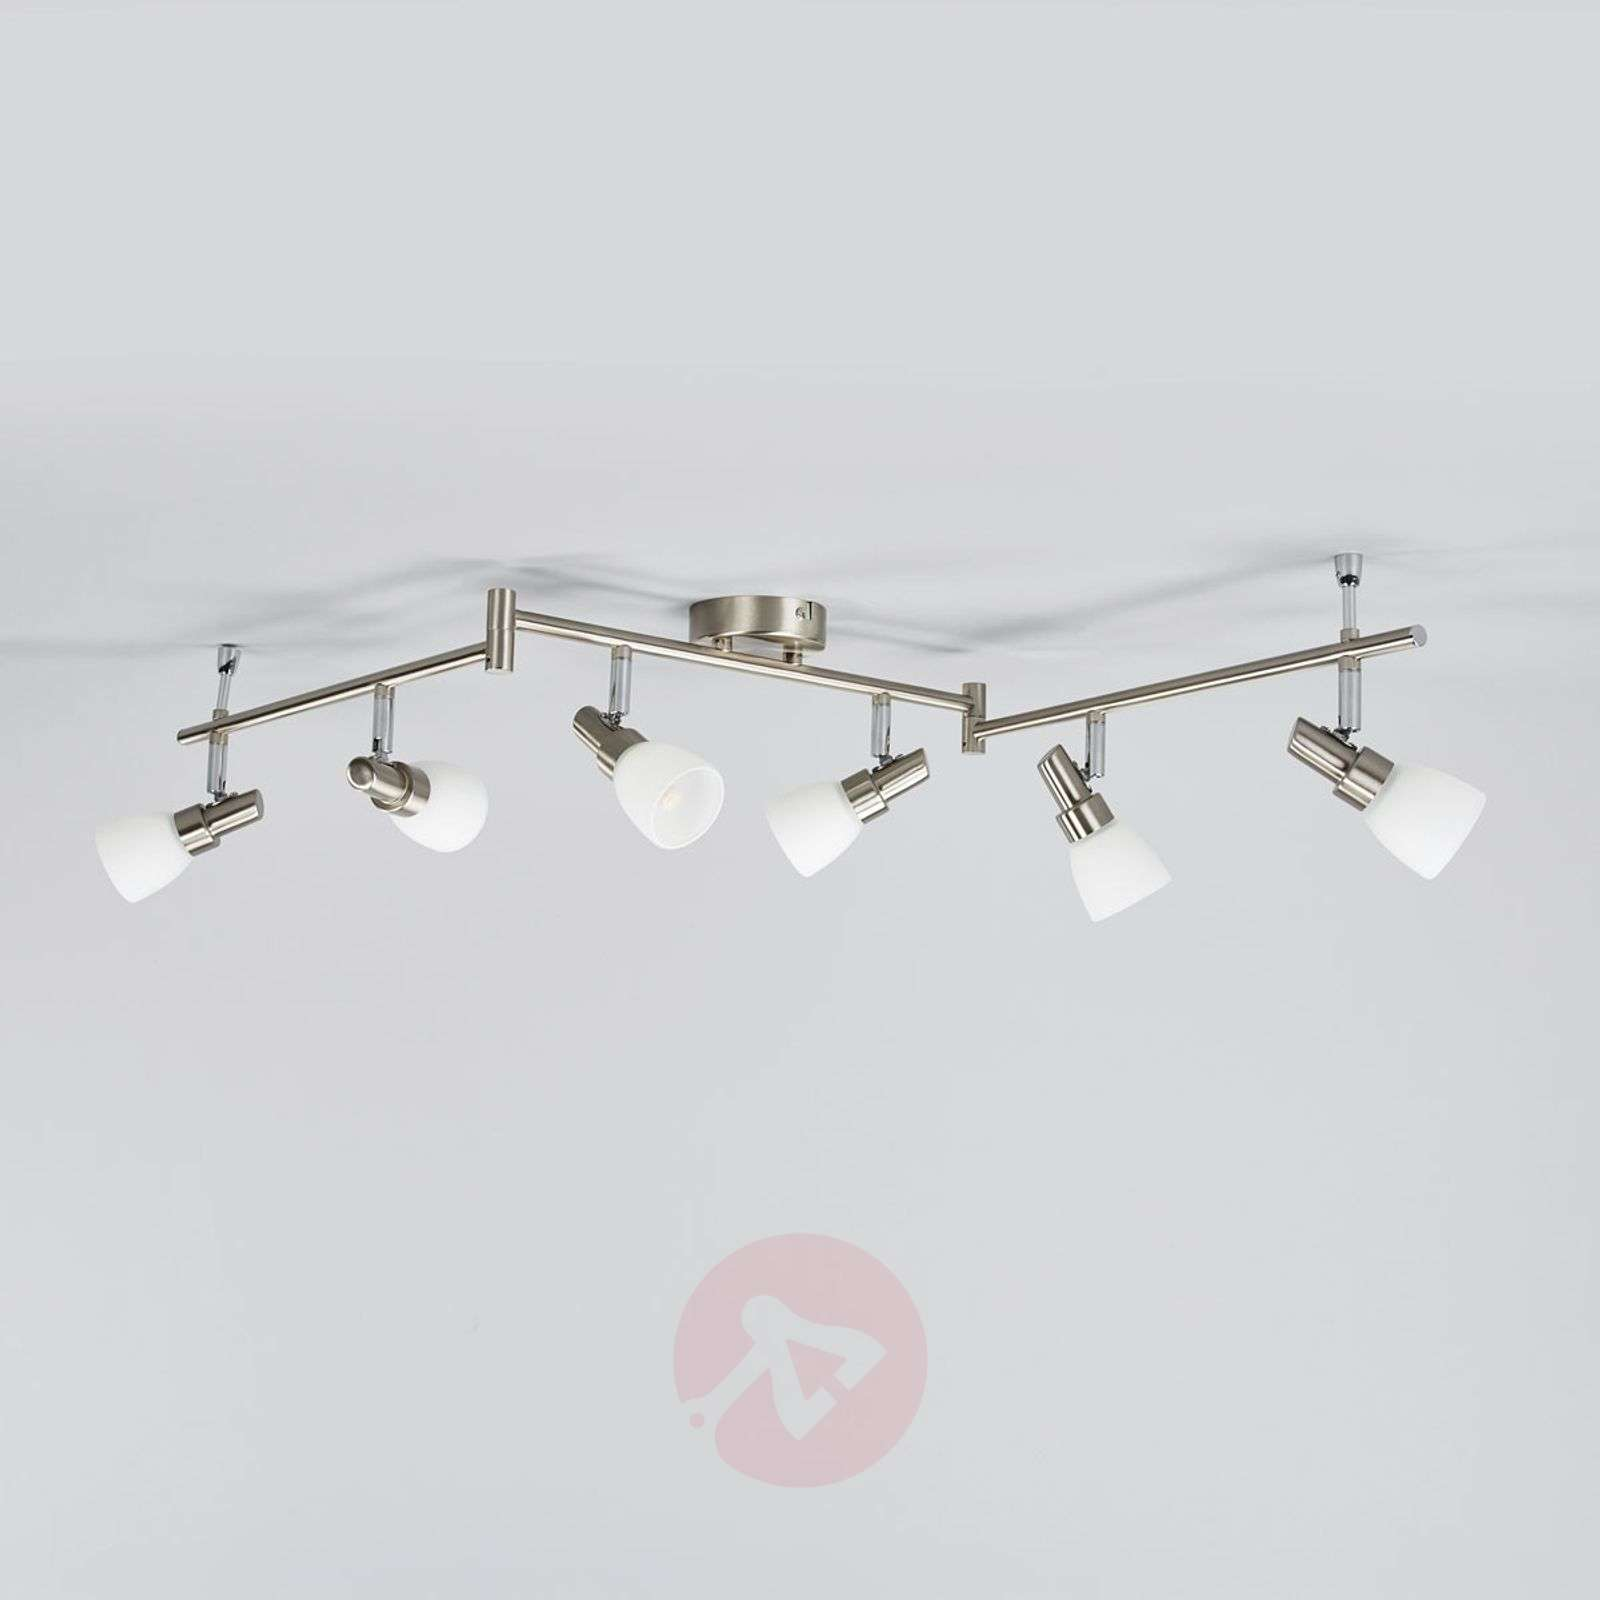 Bright LED Kitchen Light Vila G Dimmable Lightsie - Bright led kitchen lights